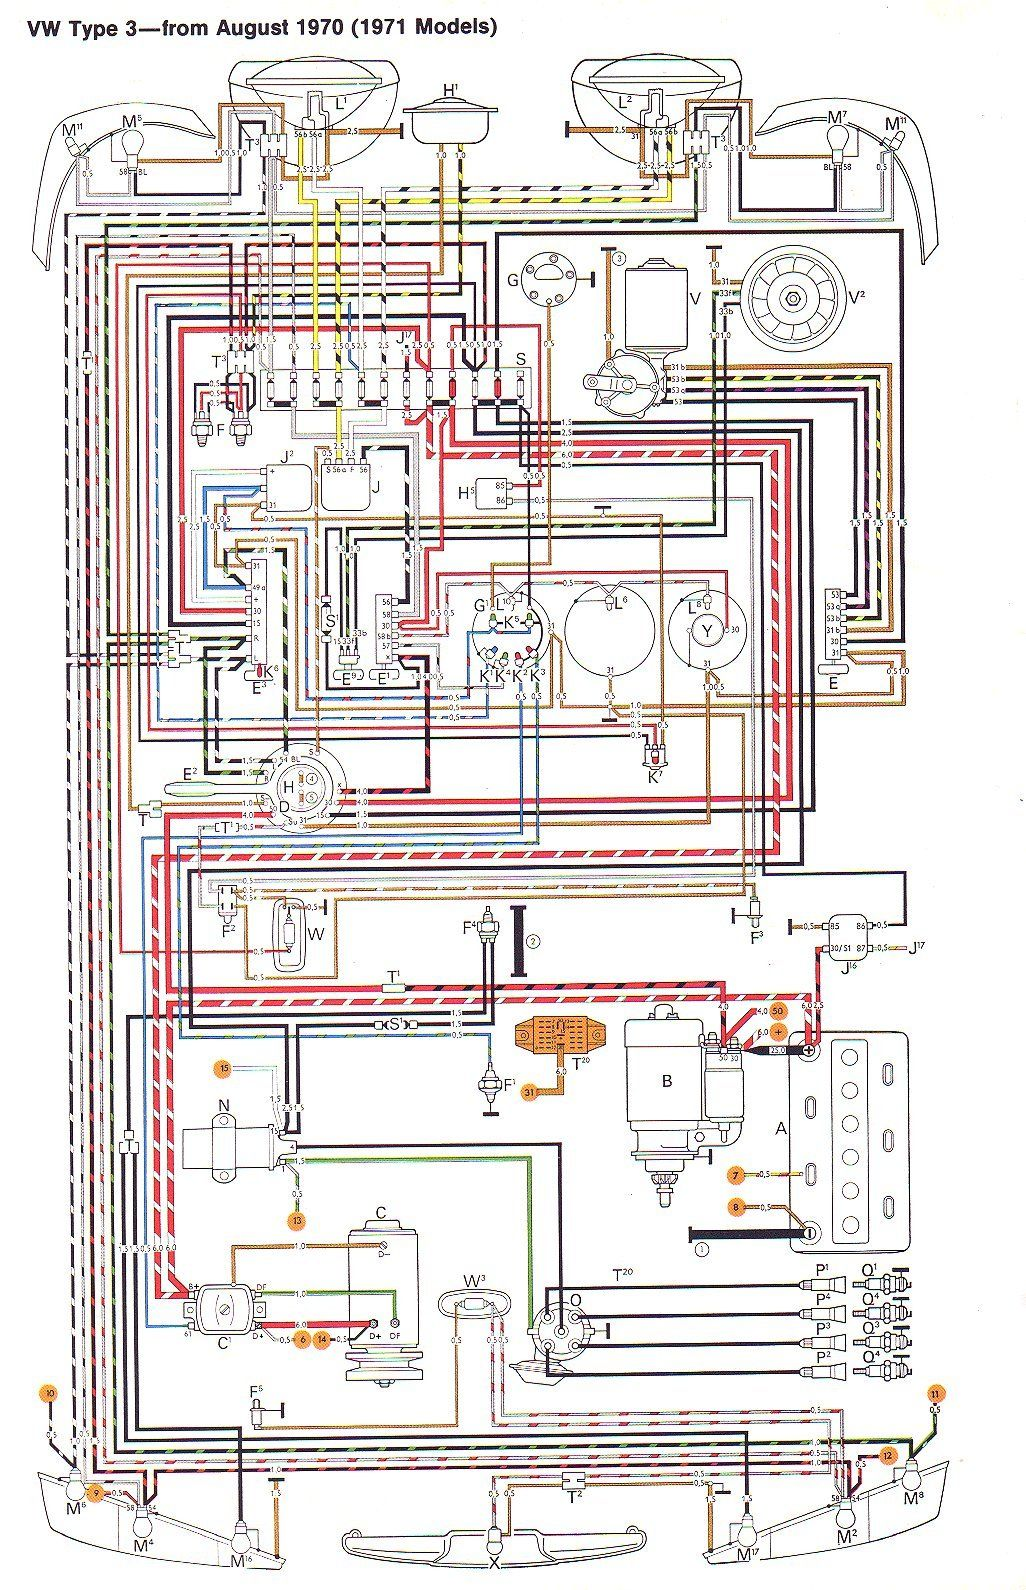 e0db58370f79a63d02d45f00cf63f44a 71 vw t3 wiring diagram car projects pinterest volkswagen 72 vw bus wiring diagram at alyssarenee.co